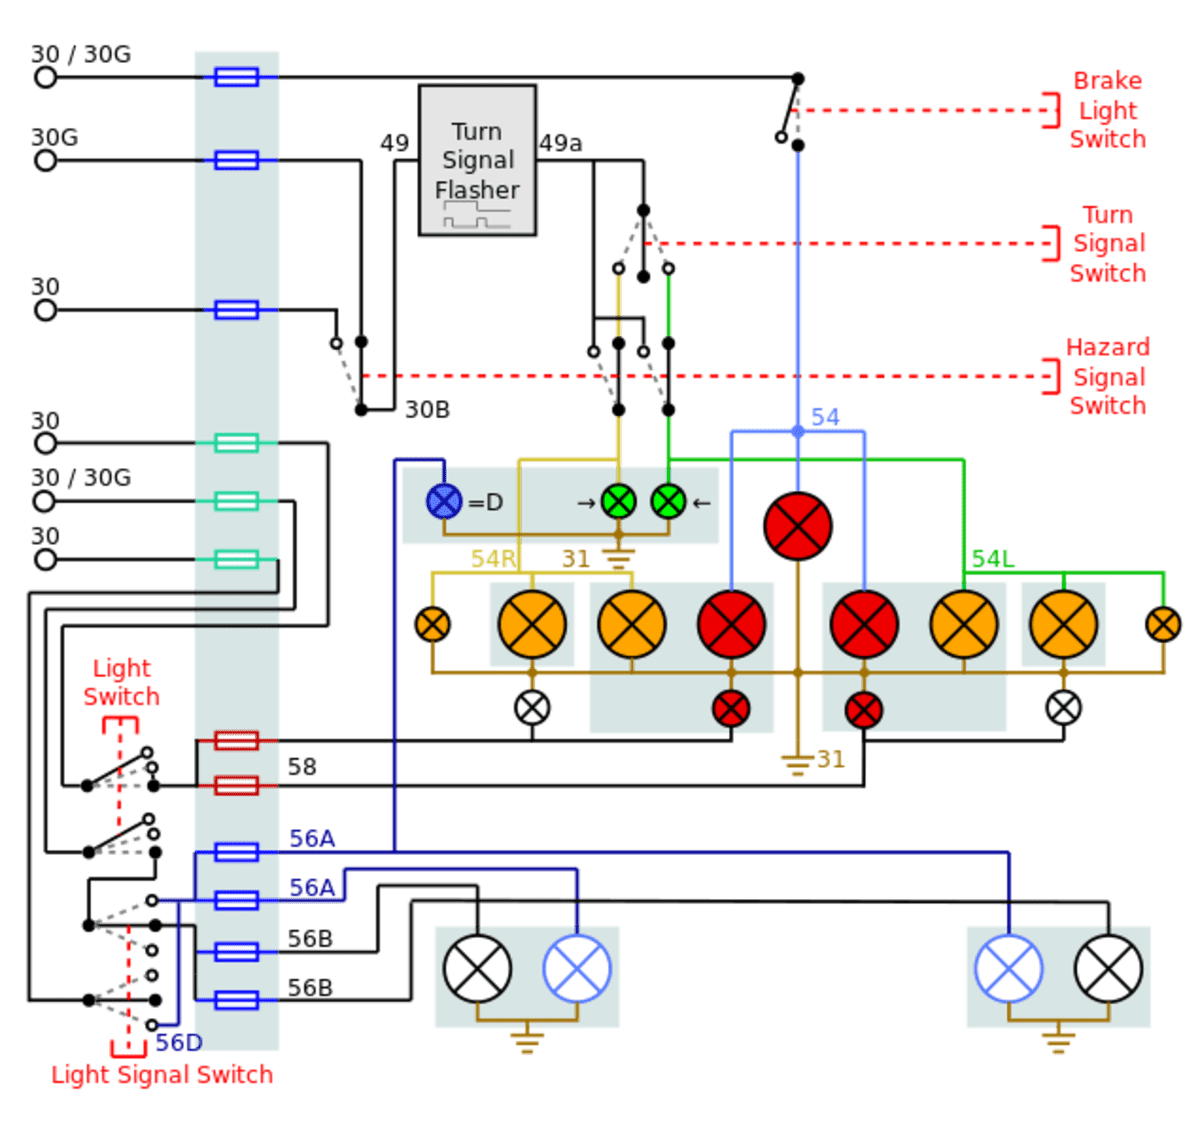 car light wiring diagram 1999 ford f250 ignition why don t my brake lights work axleaddict if necessary use your vehicle to identify switch wires and connections